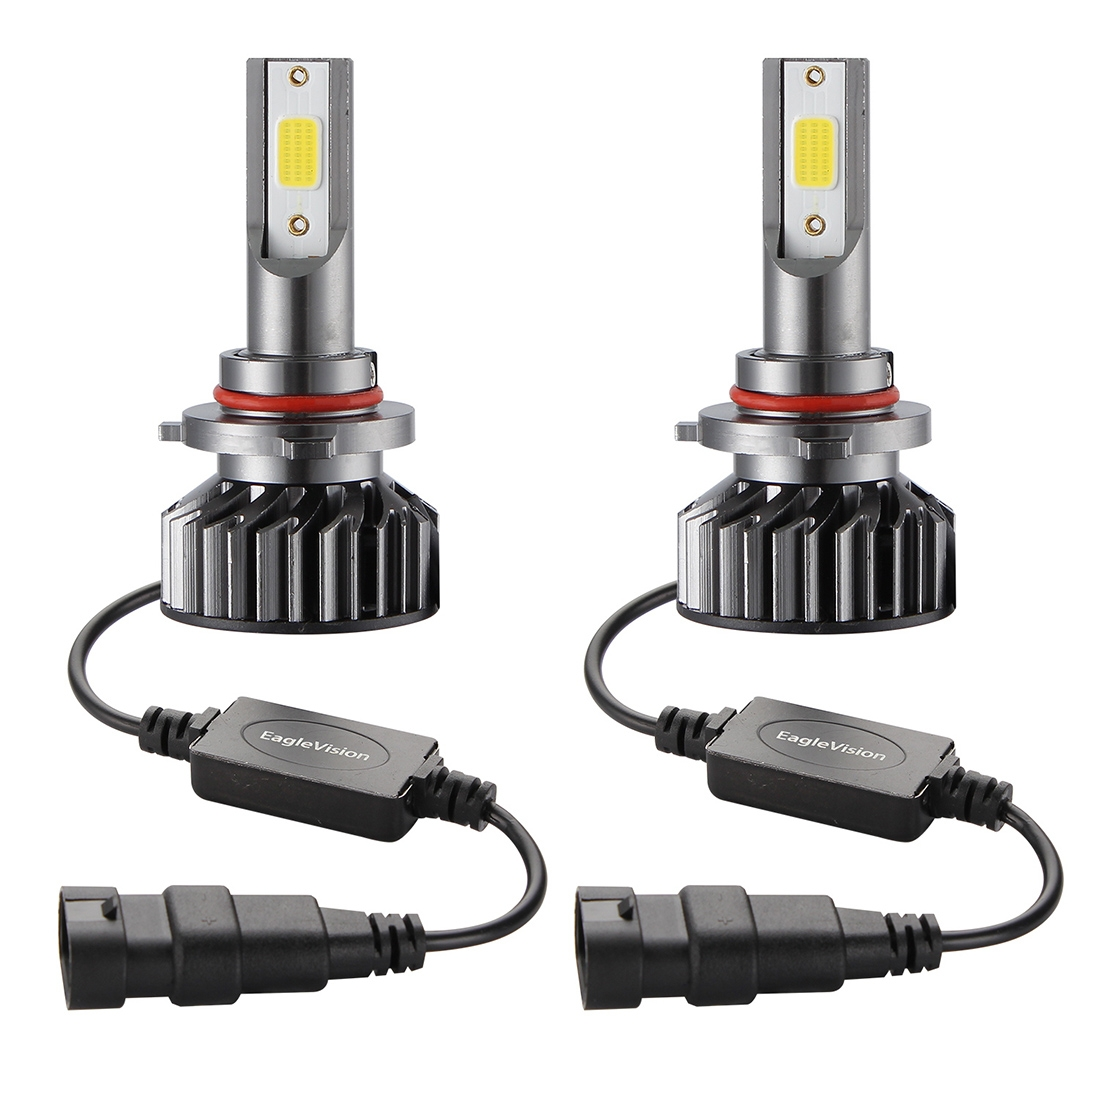 2 PCS EV8 HB3 / 9005 DC 9-32V 36W 3000LM 6000K IP67 DOB LED Car Headlight Lamps, with Mini LED Driver and Cable (White Light)